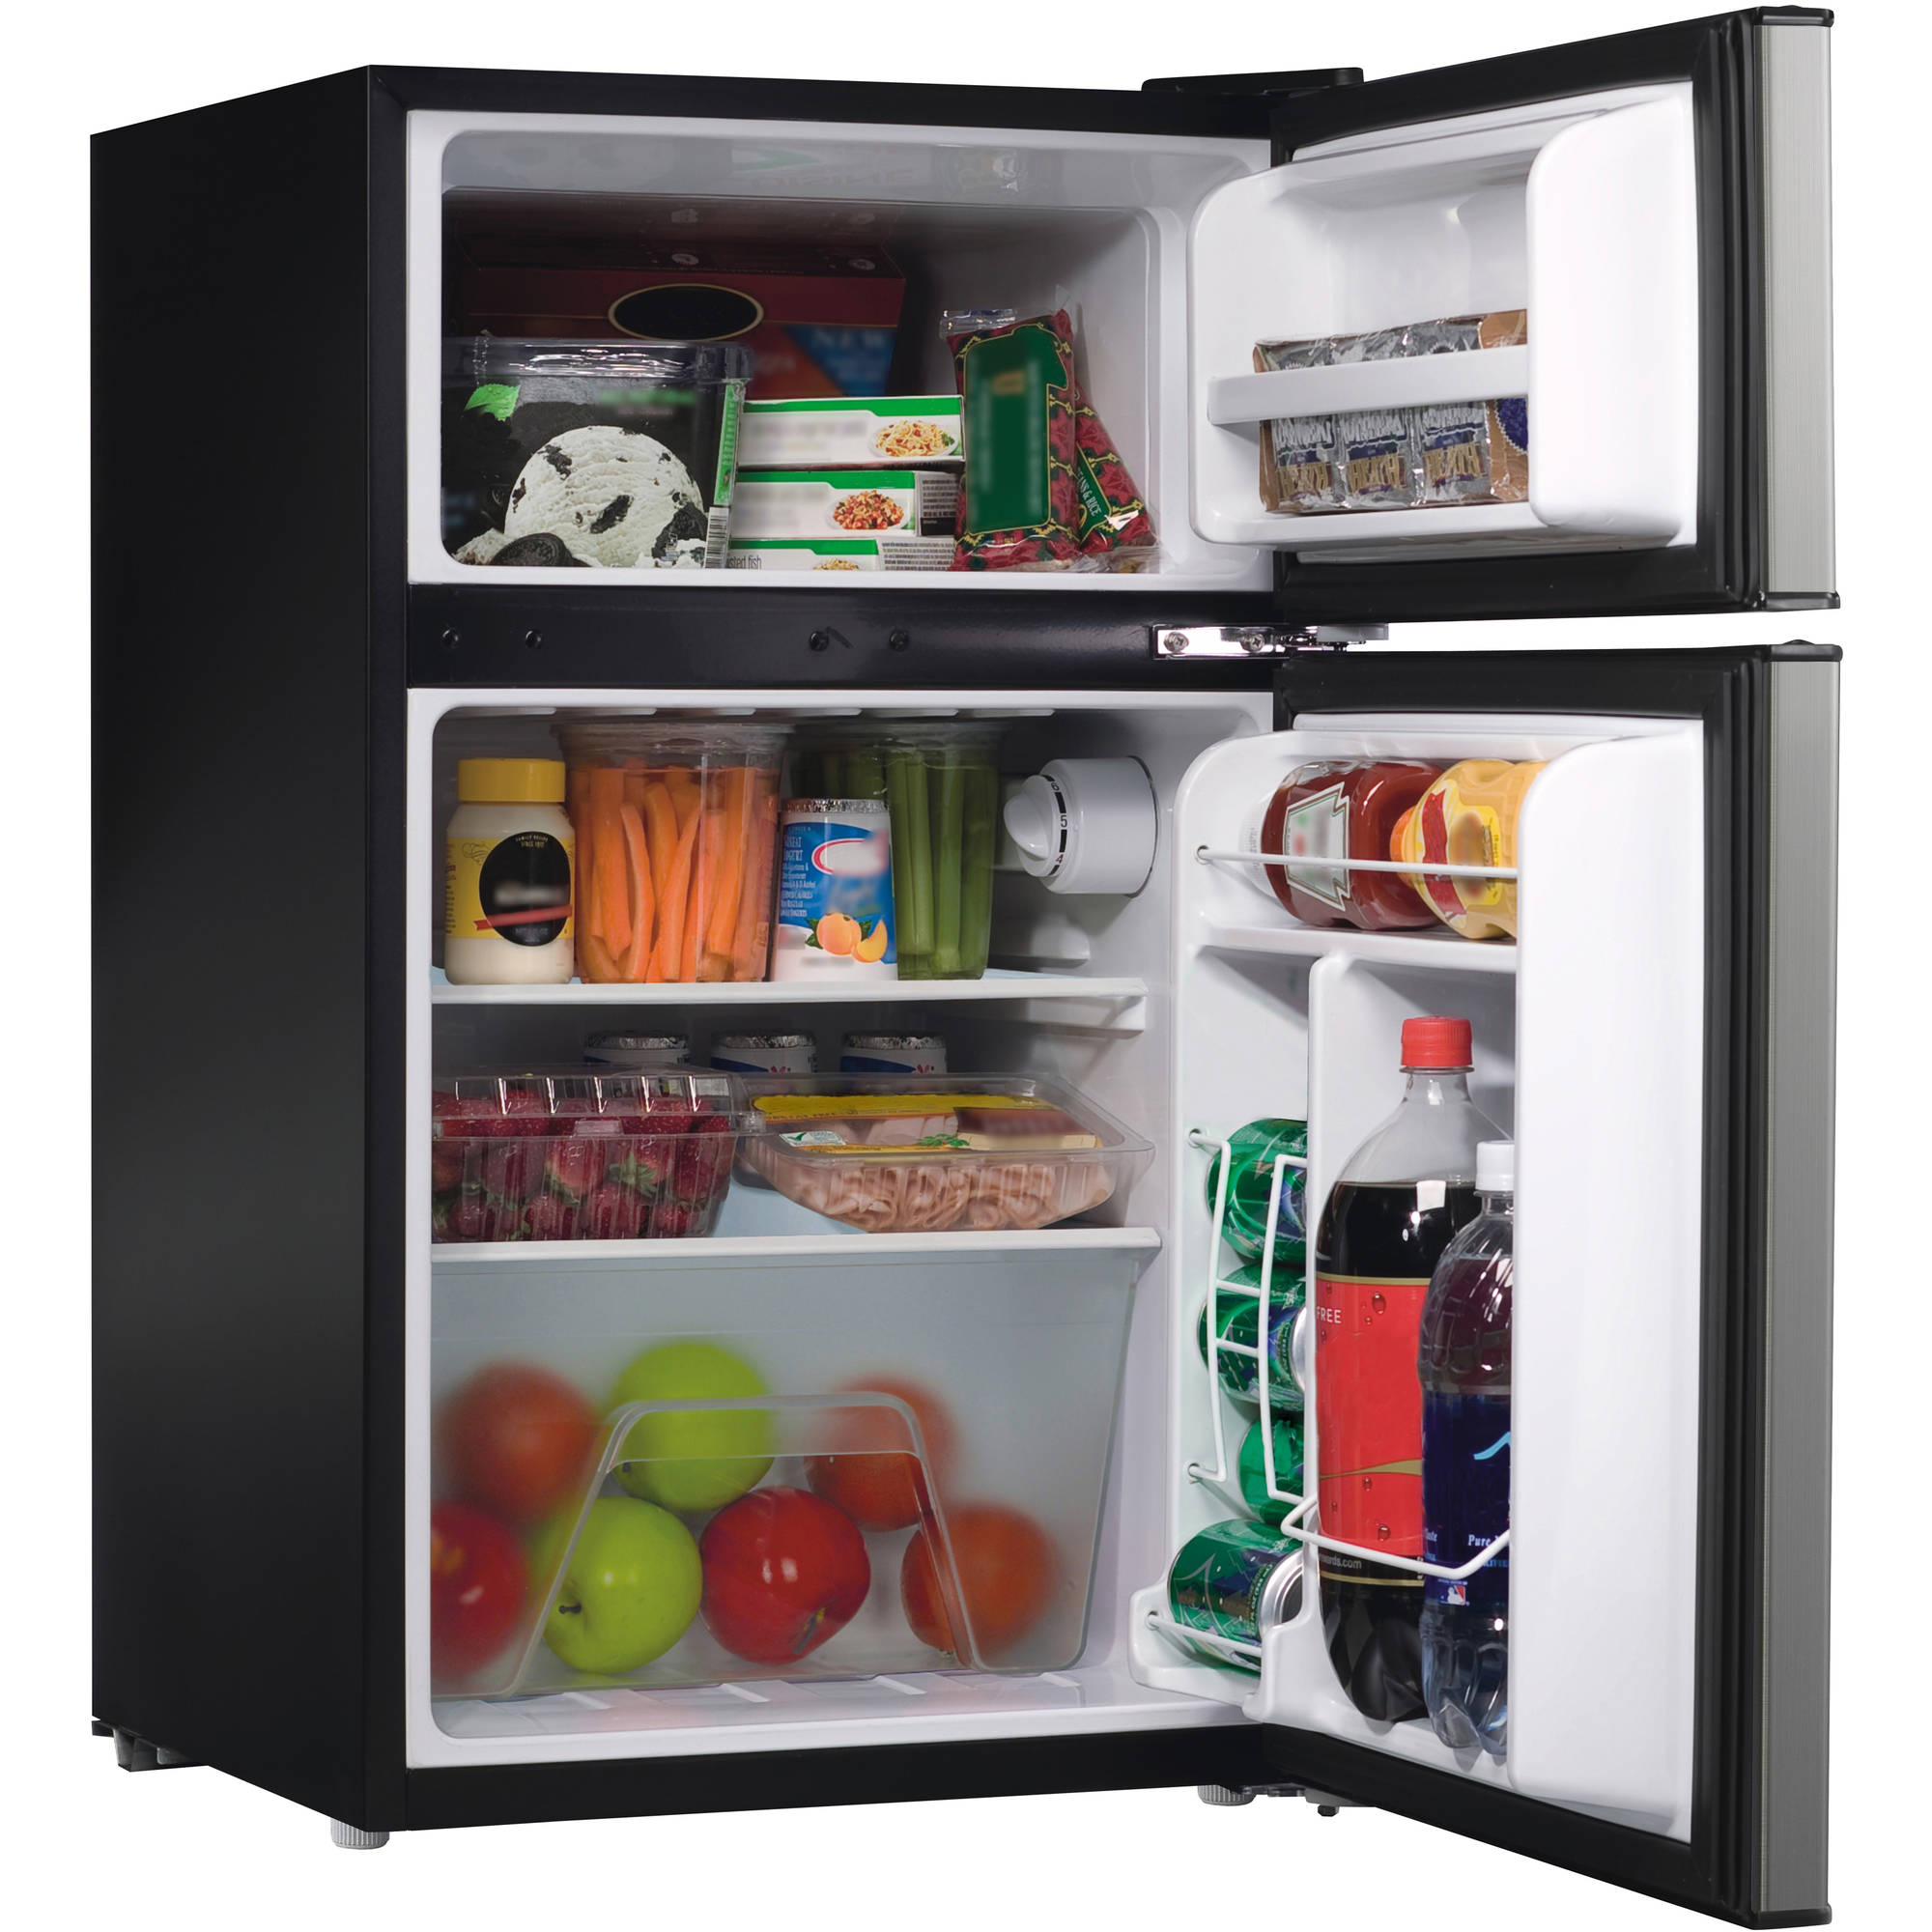 galanz 3.1cu ft compact refrigerator double door, stainless steel